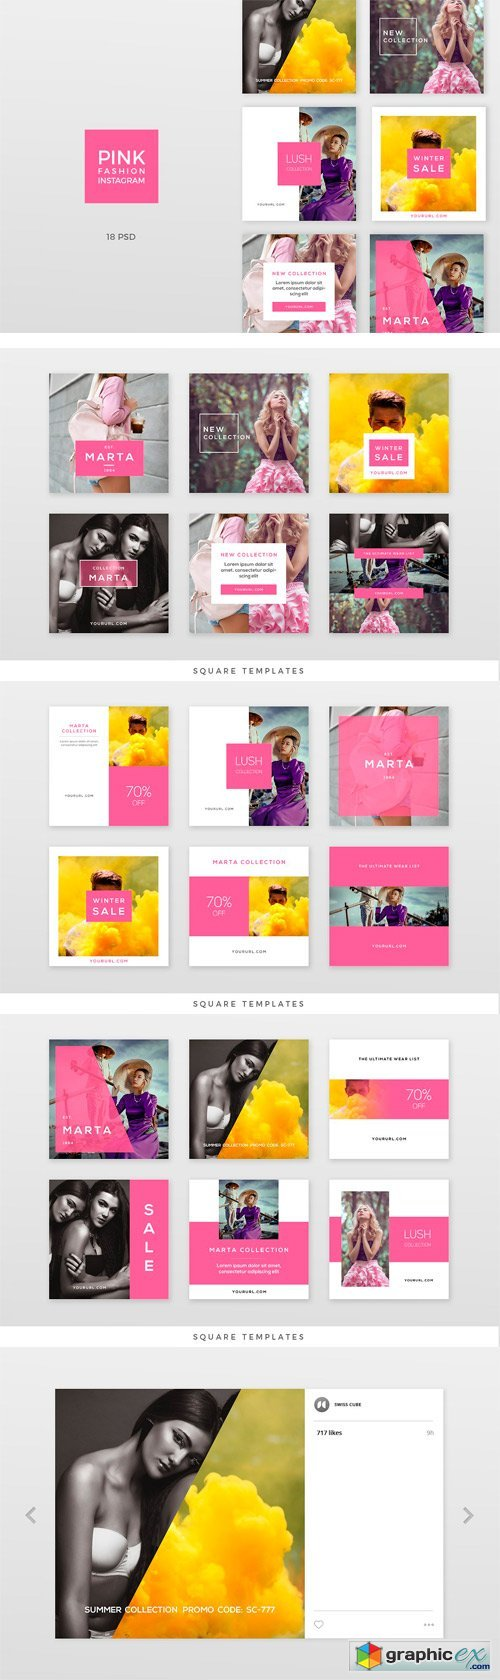 Pink Fashion Instagram Pack